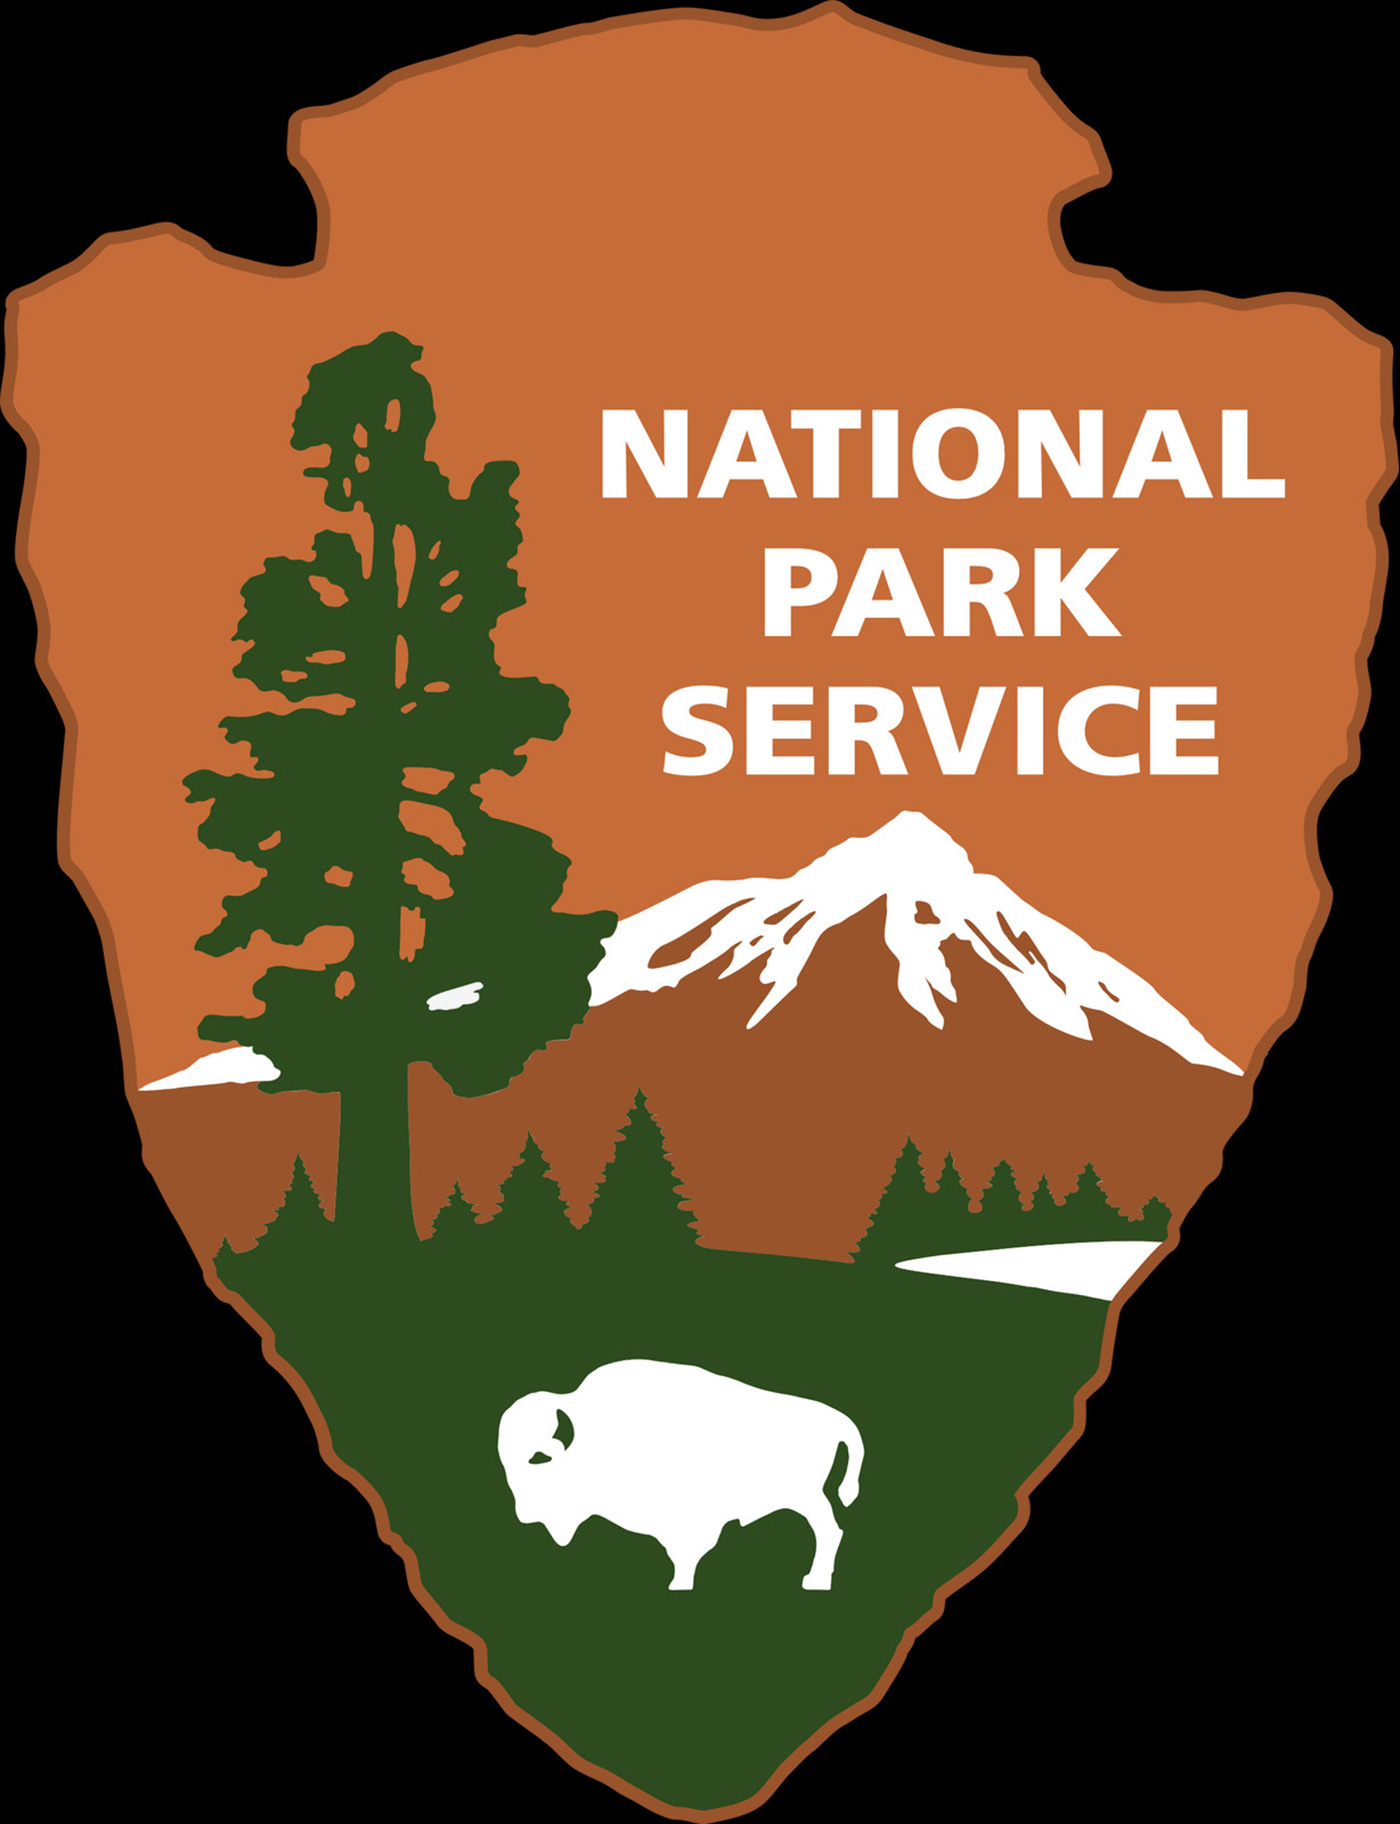 The National Park Service preserves unimpaired the natural and cultural resources and values of the National Park System for the enjoyment, education, and inspiration of this and future generations. The Park Service cooperates with partners to extend the benefits of natural and cultural resource conservation and outdoor recreation throughout this country and the world.